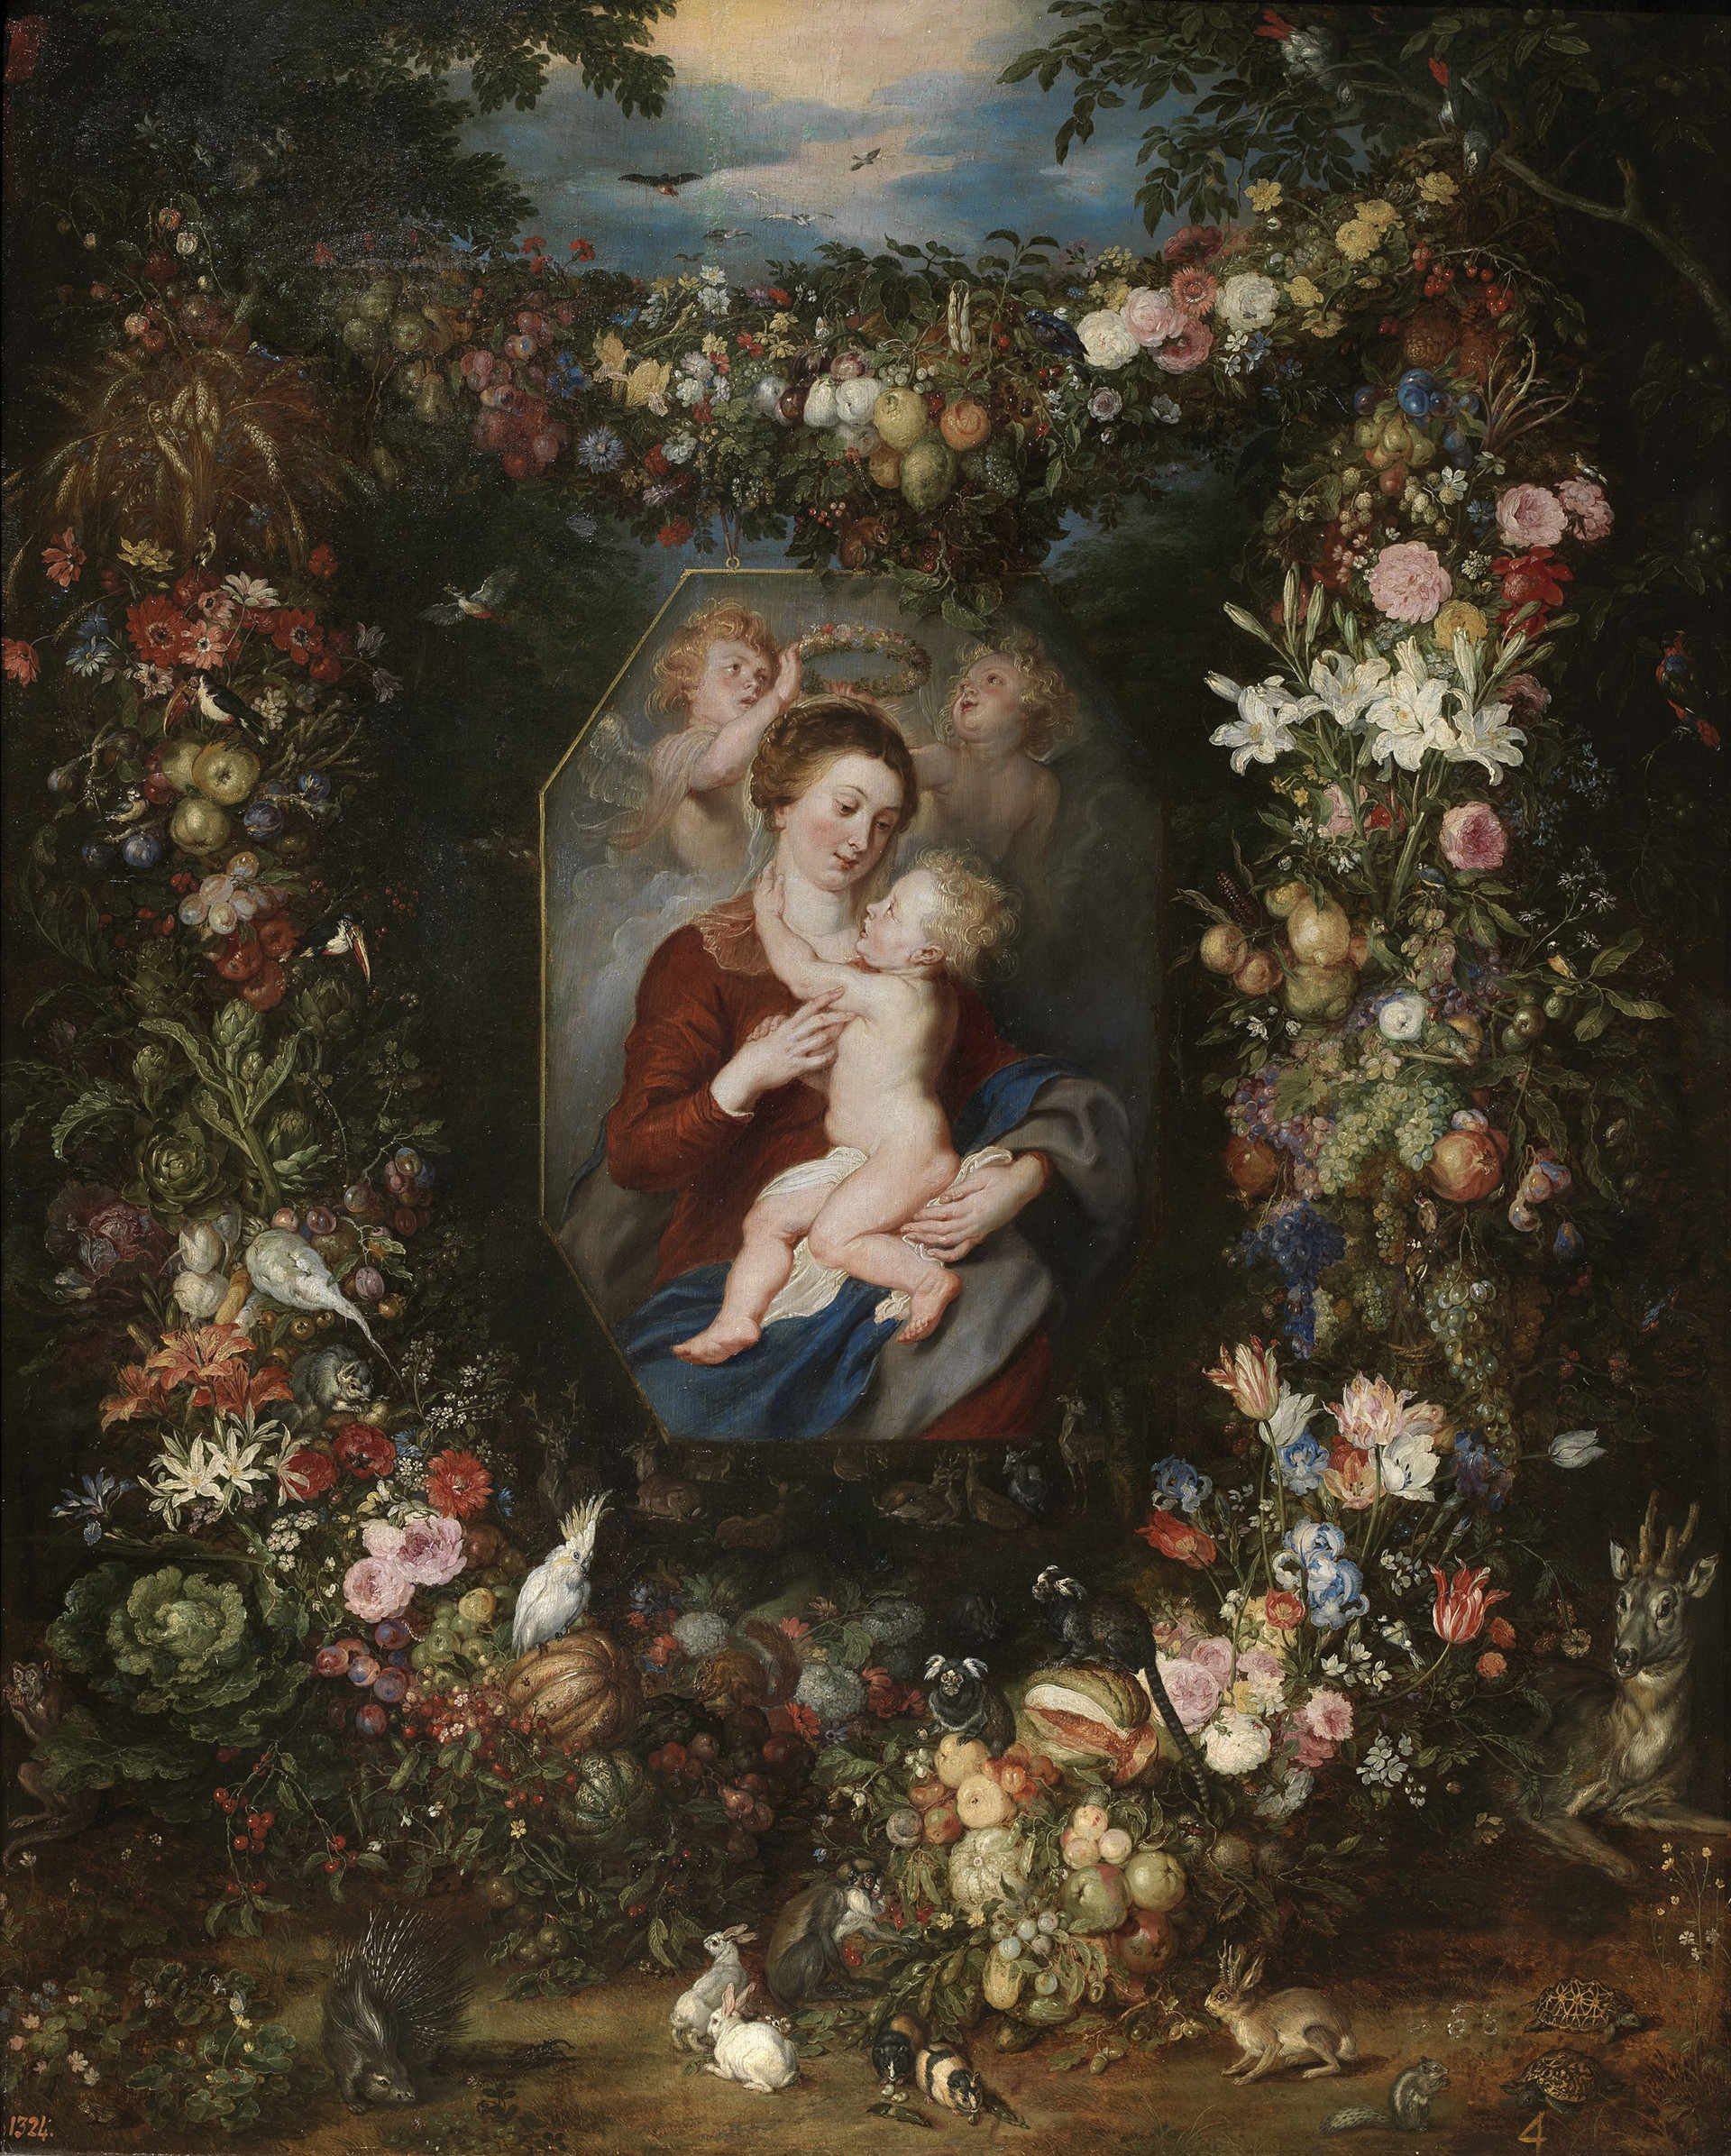 Virgin and Child Surrounded by Fruit and Flowers